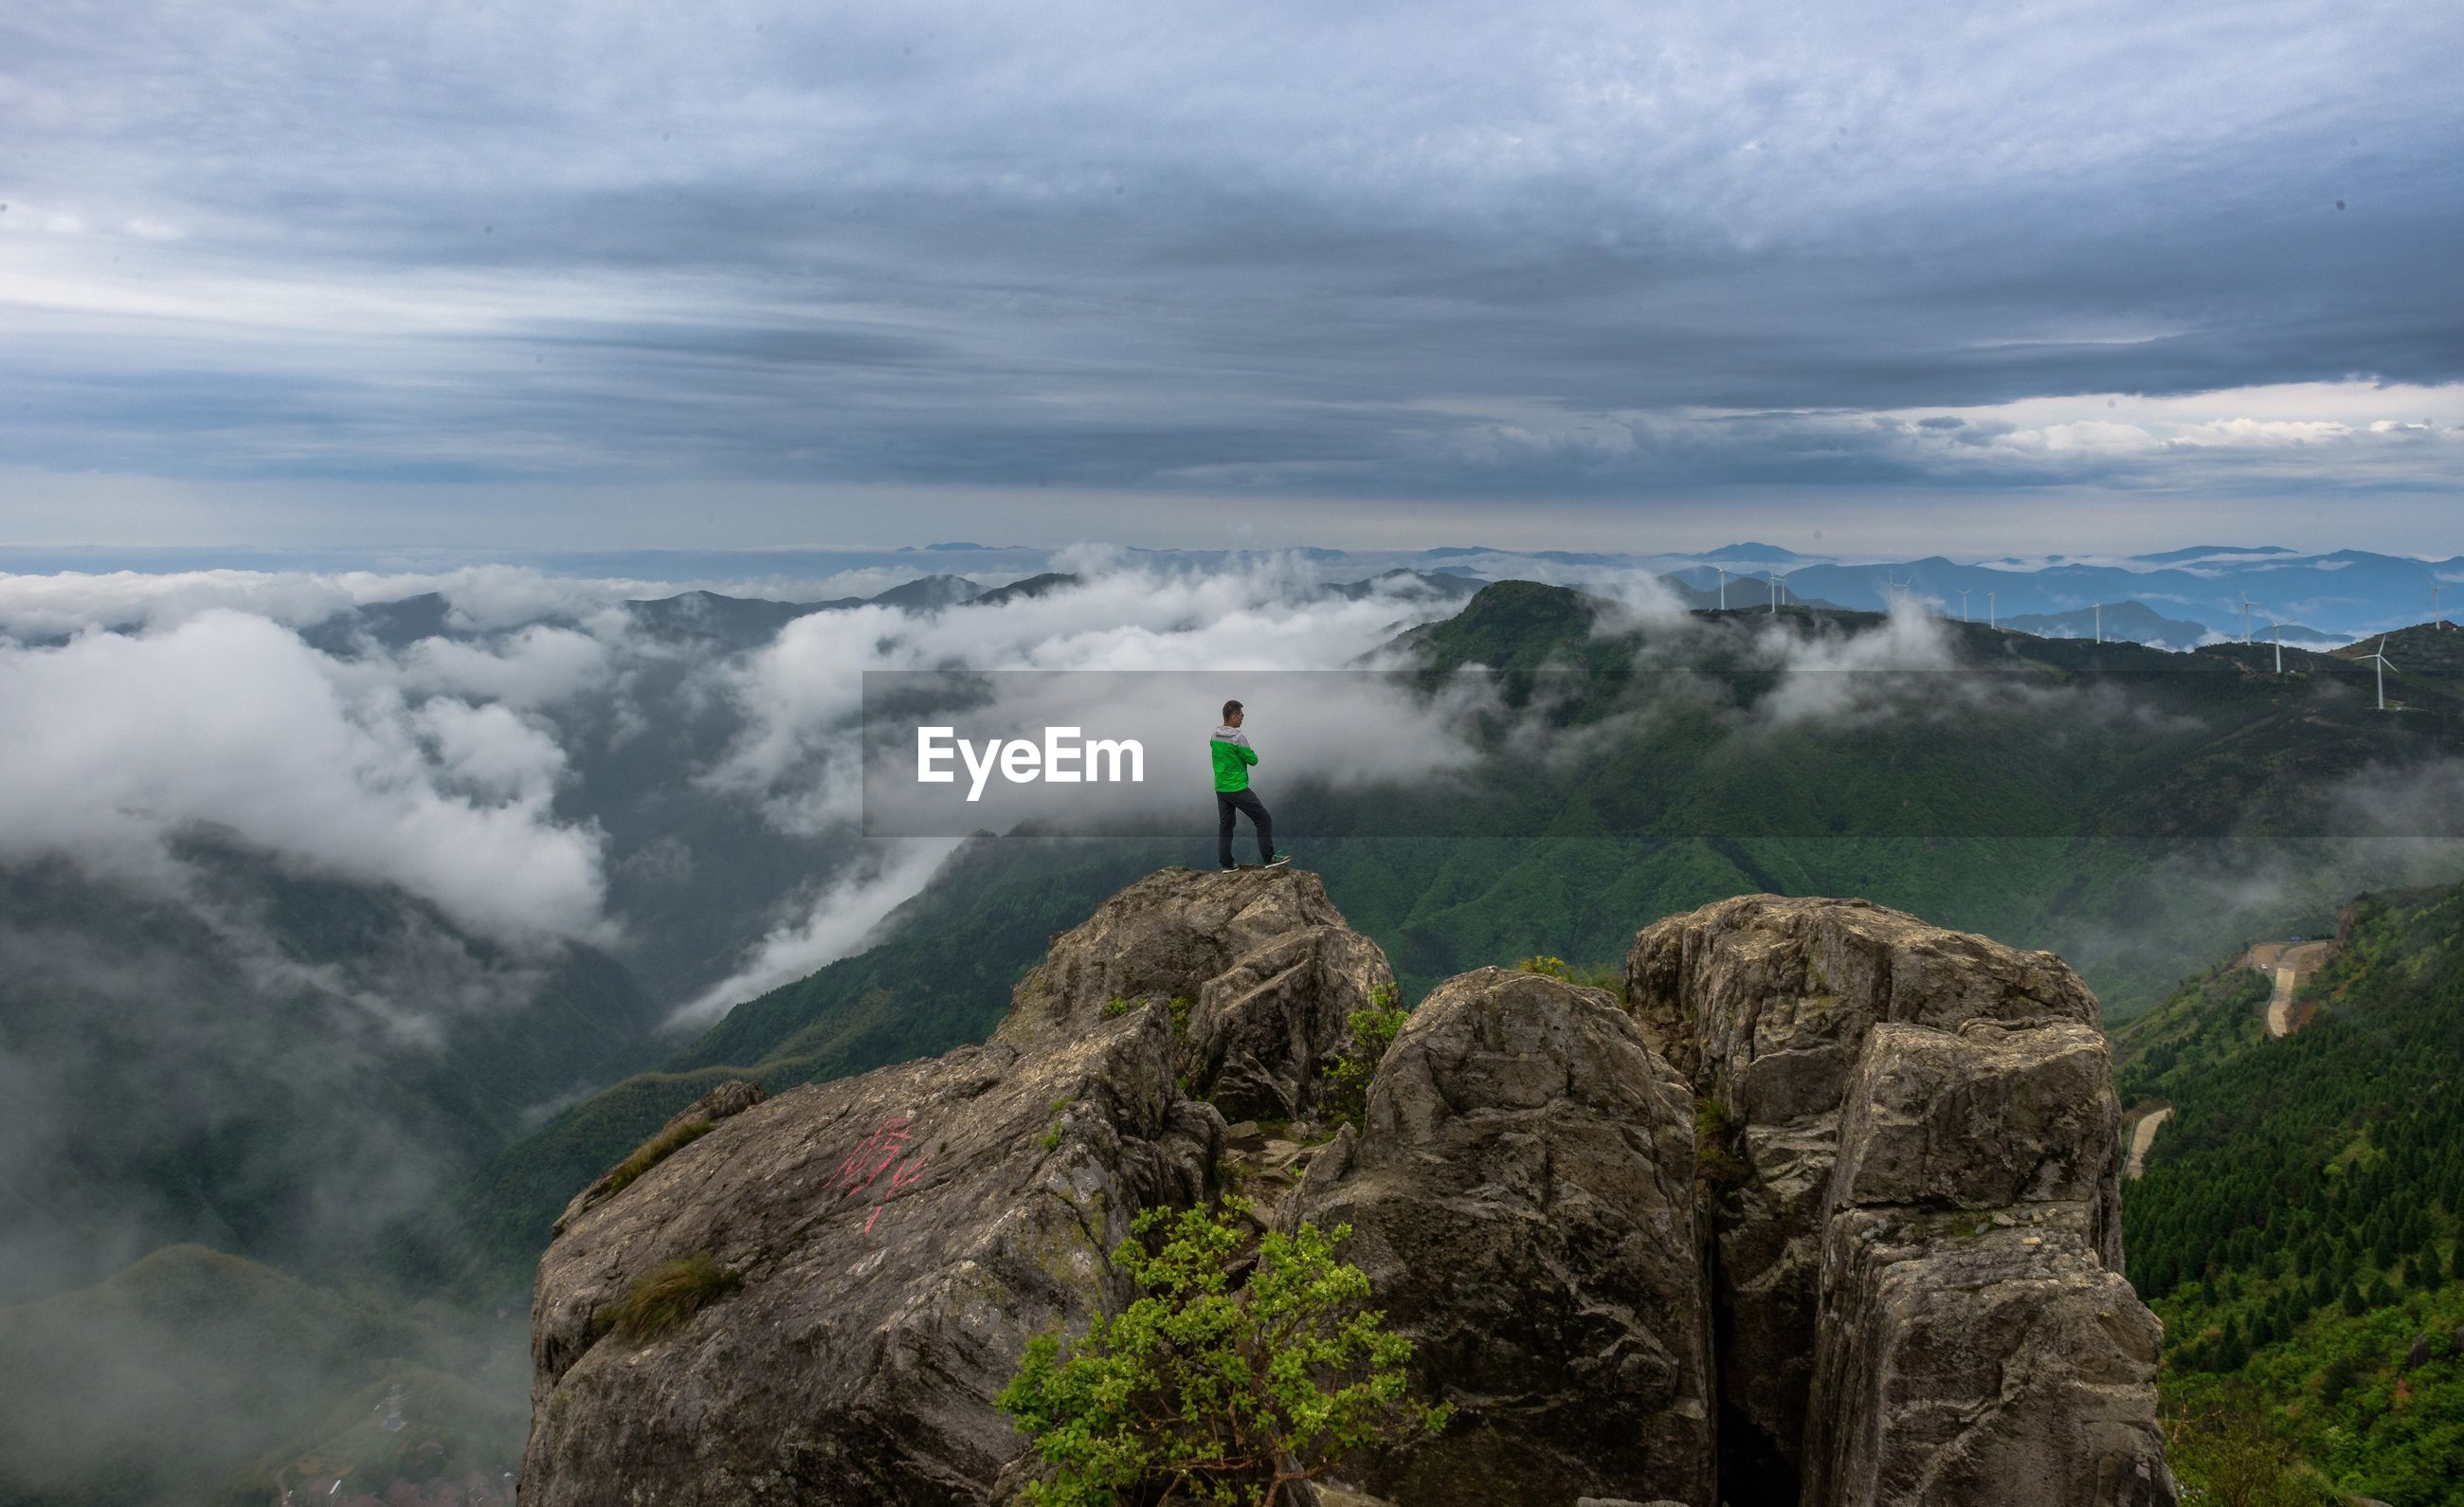 Man standing on cliff overlooking mountains and wind turbine